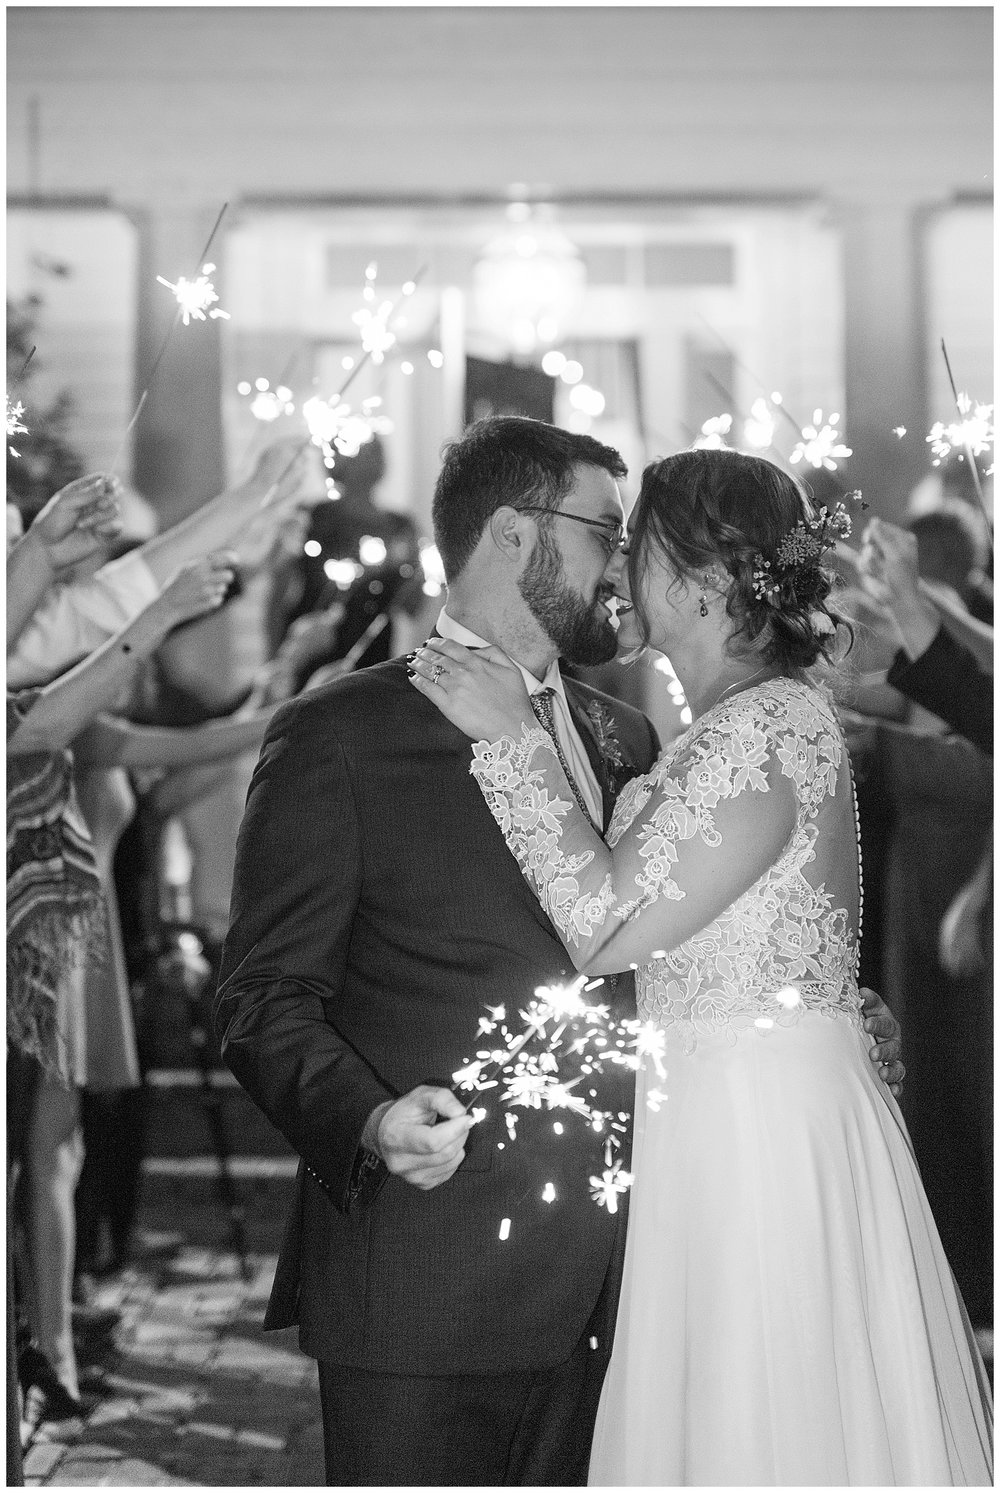 Write here…Lynchburg Virginia Wedding Photographer || Central Virginia Wedding Photos || Ashley Eiban Photography || www.ashleyeiban.com || Tresca on 8th Wedding